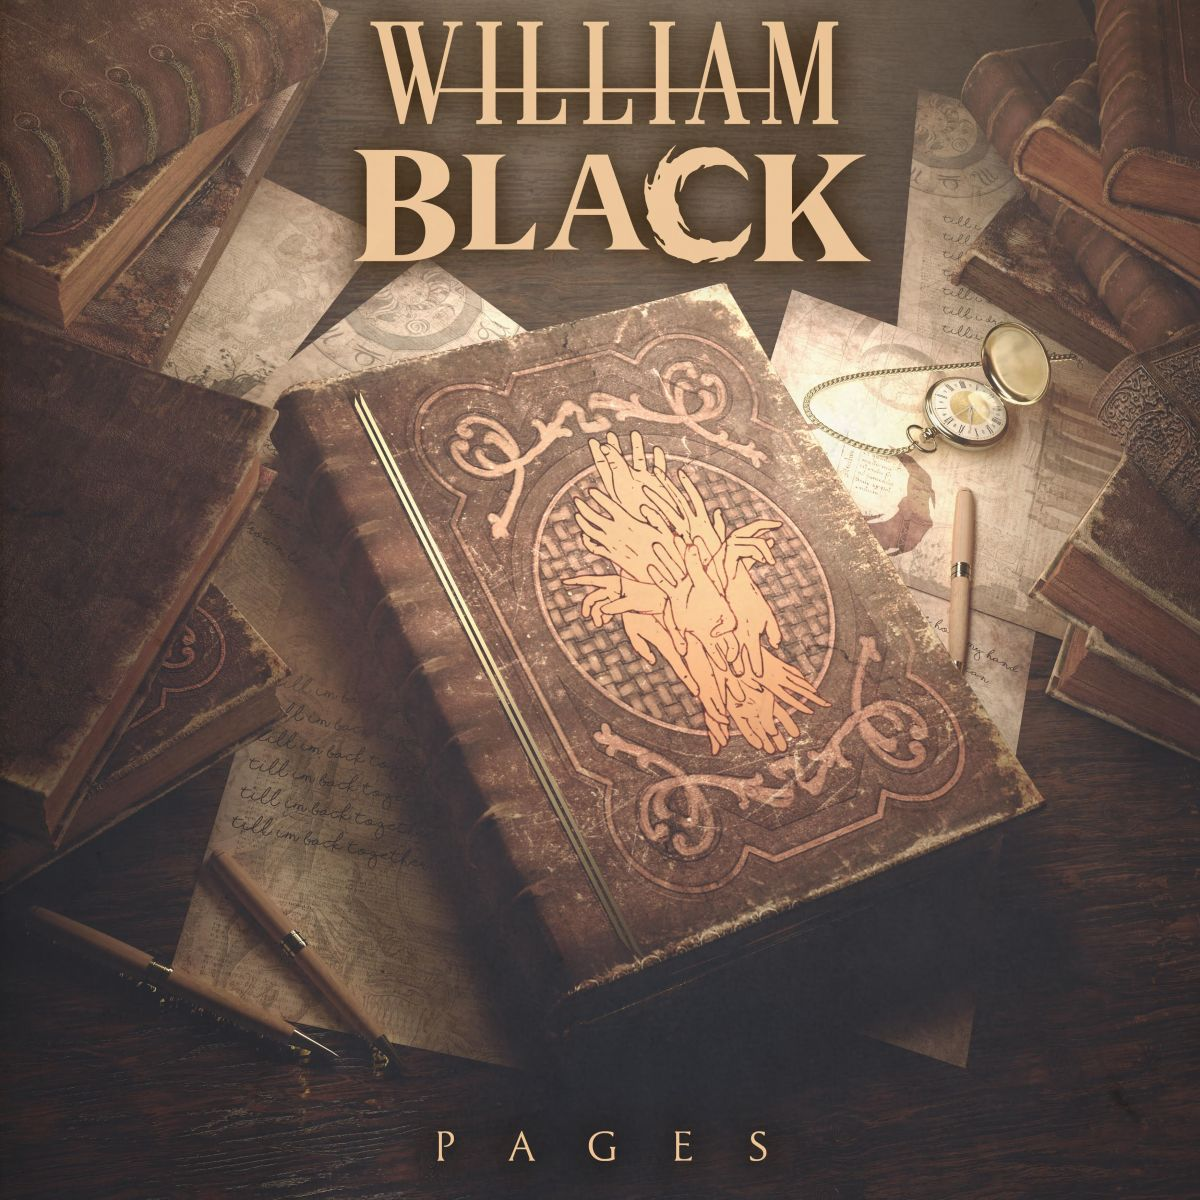 William Black Pages